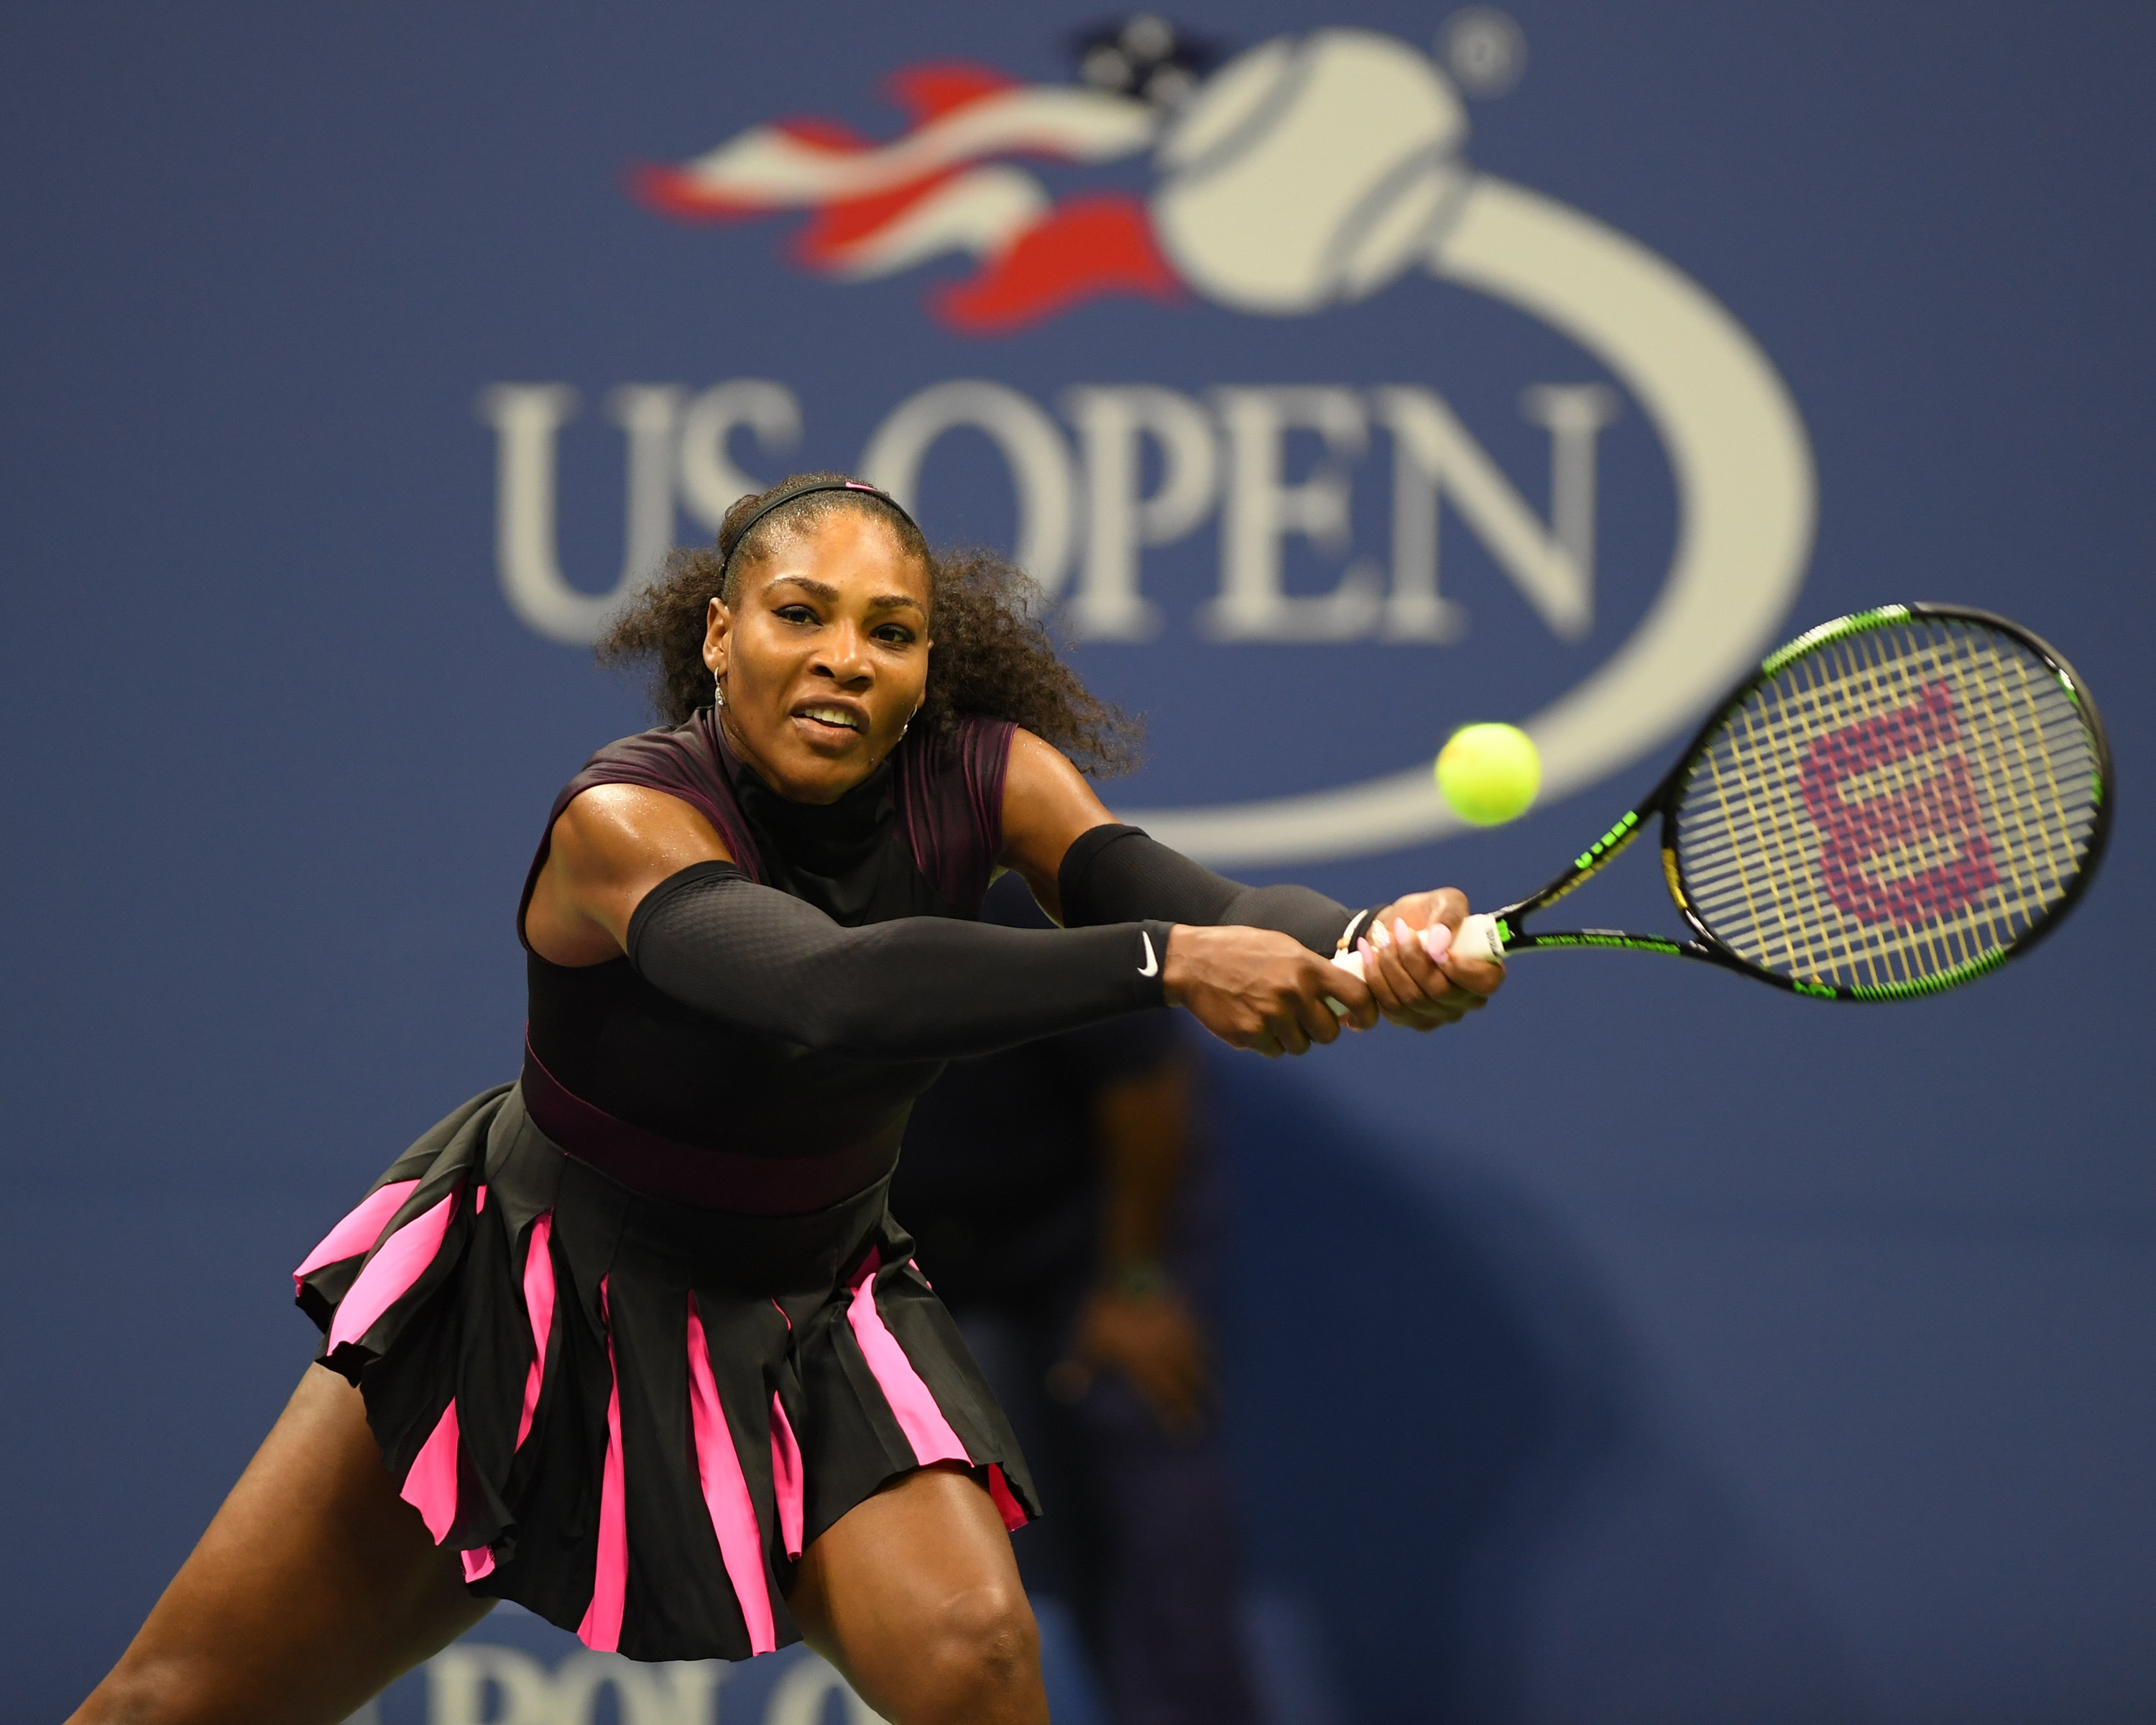 Serena Williams will not compete at the Australian Open. (Photo: WENN)